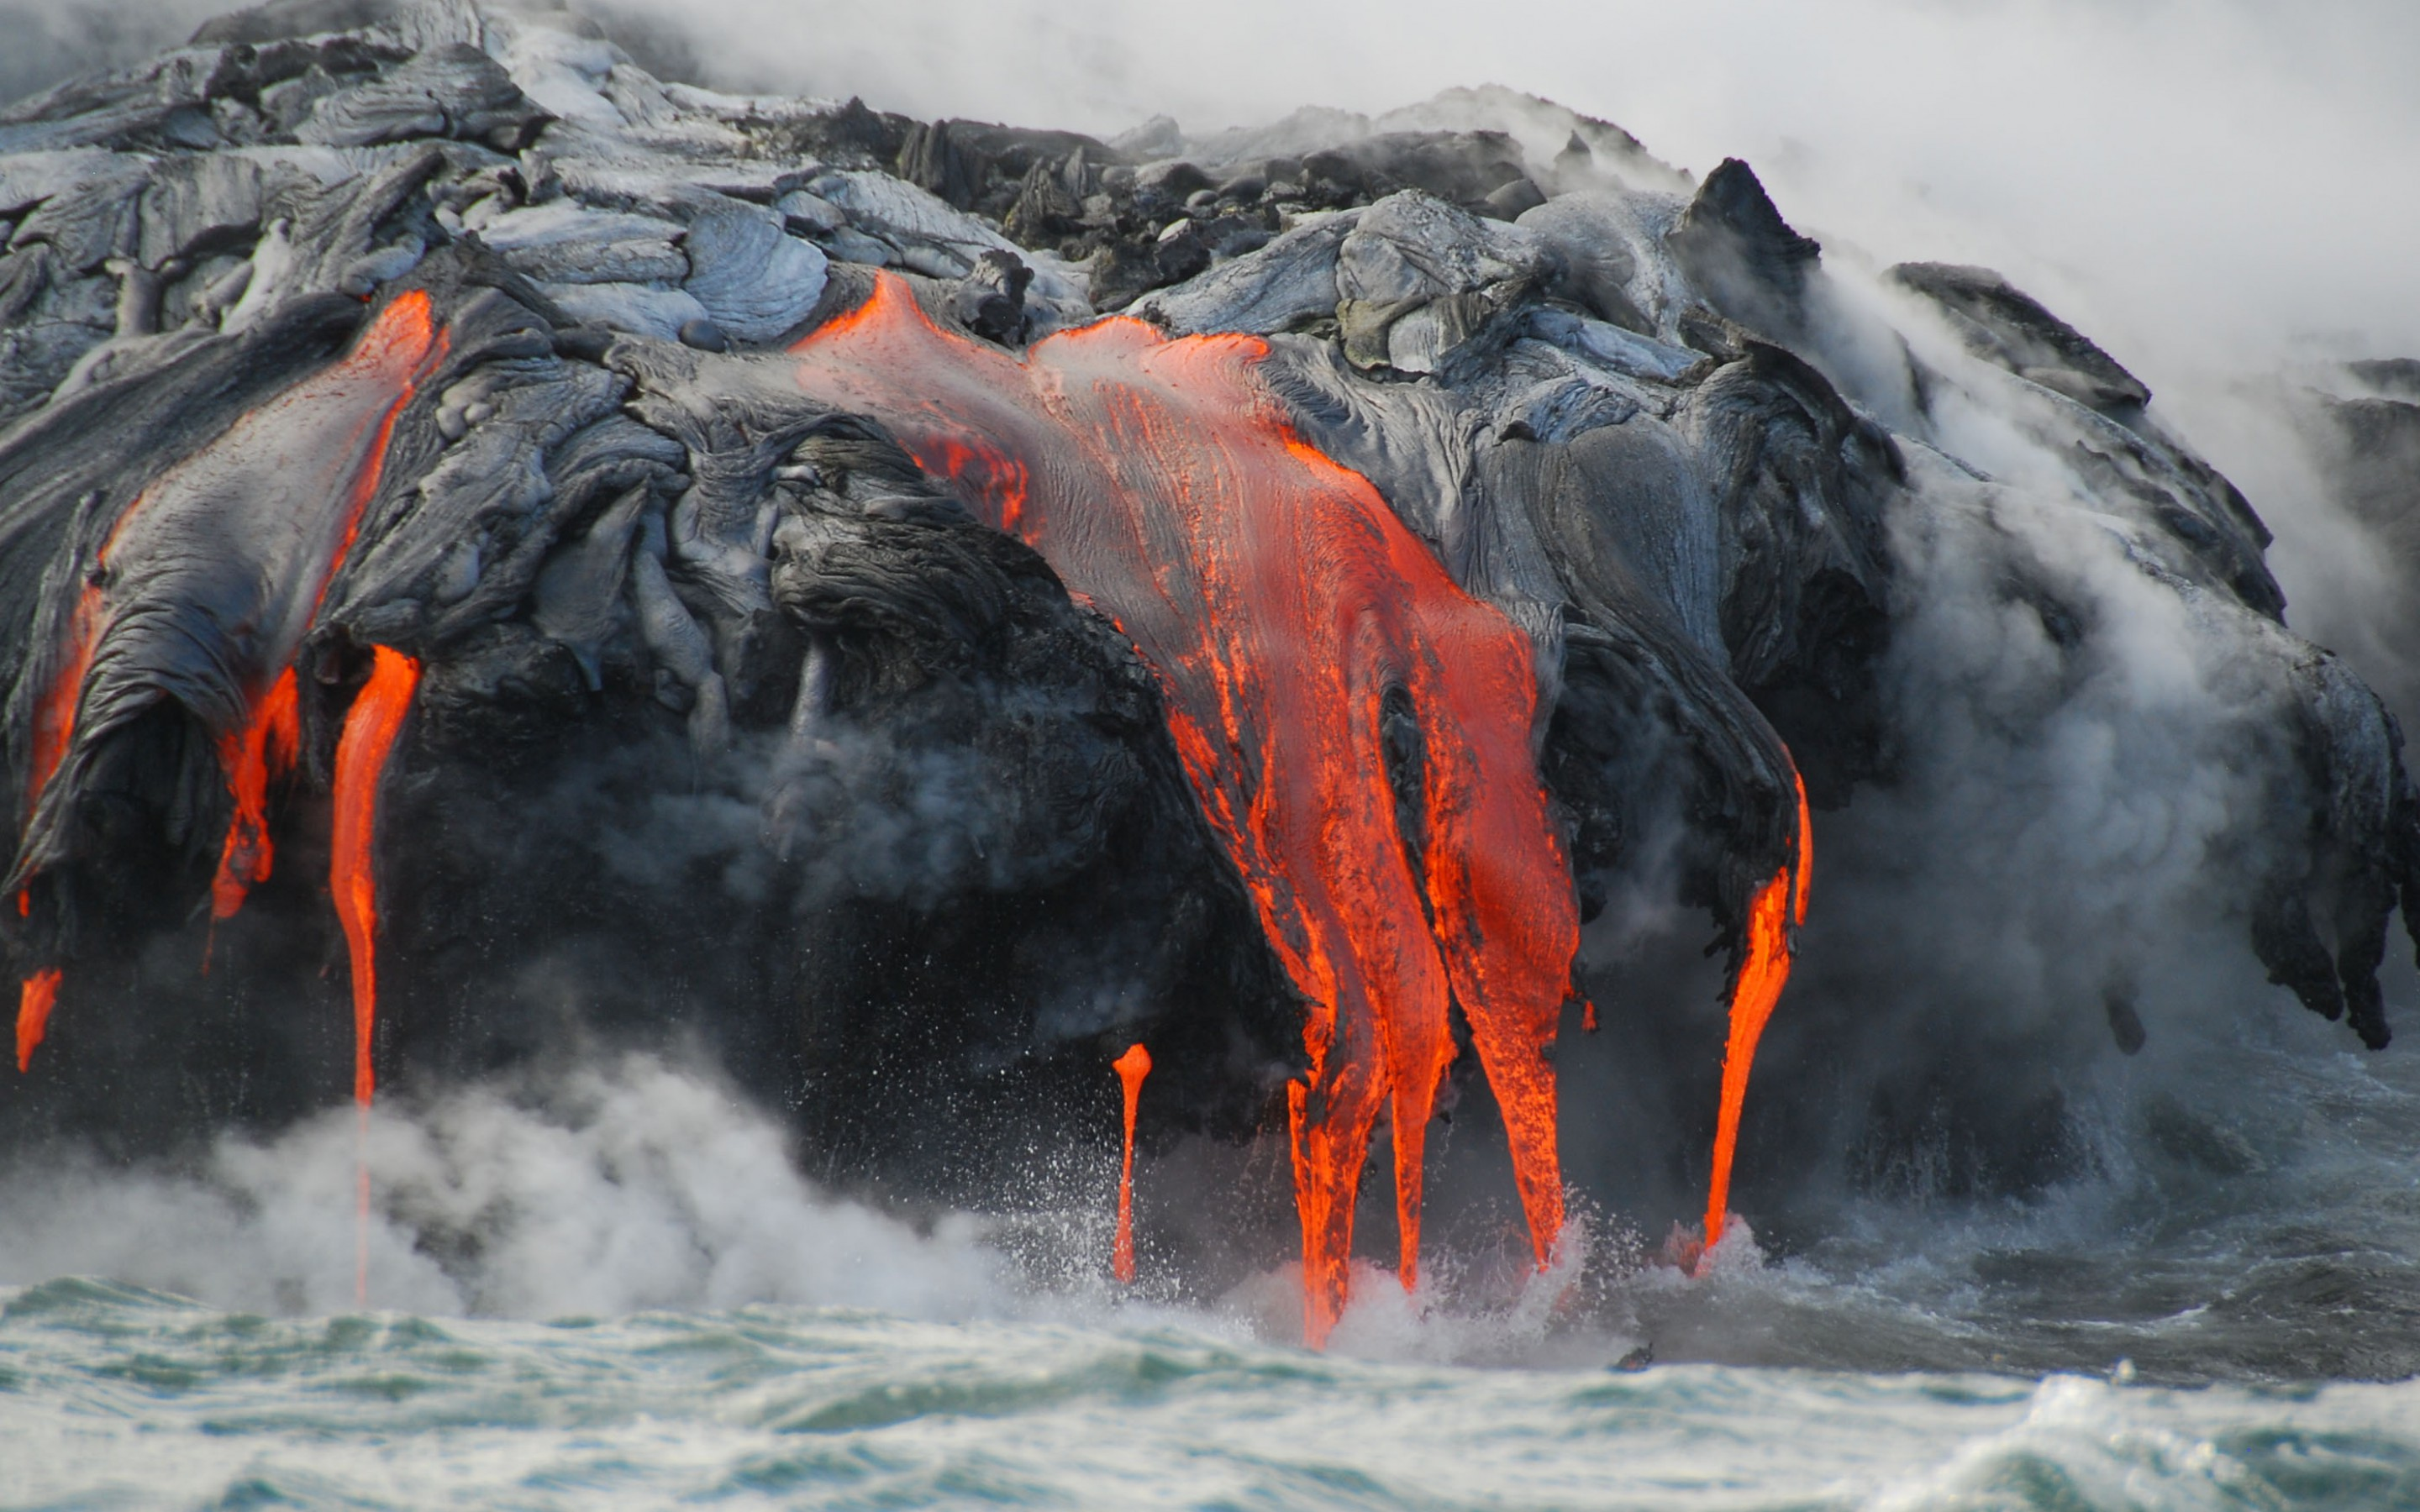 Hd Fall Wallpaper Free Lava Flow From Hawaii Volcano United States 1800x2880